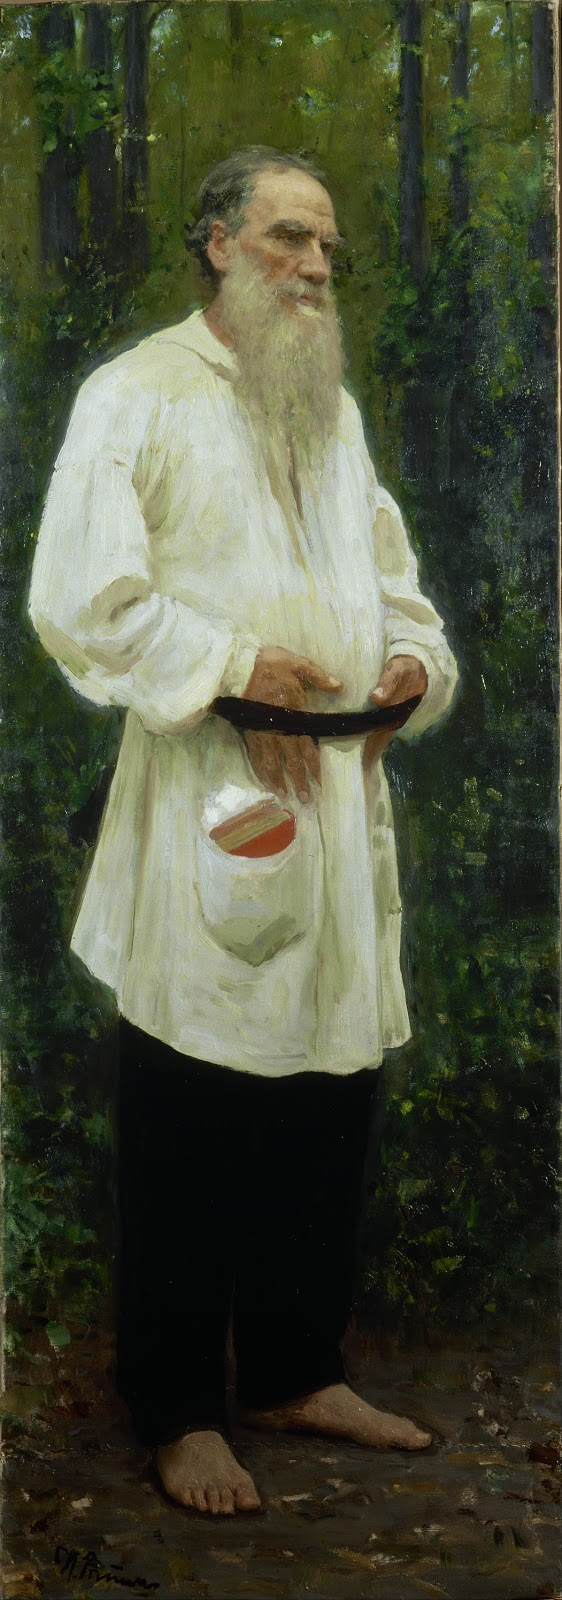 Russian author Leo Tolstoy in traditional peasant clothing